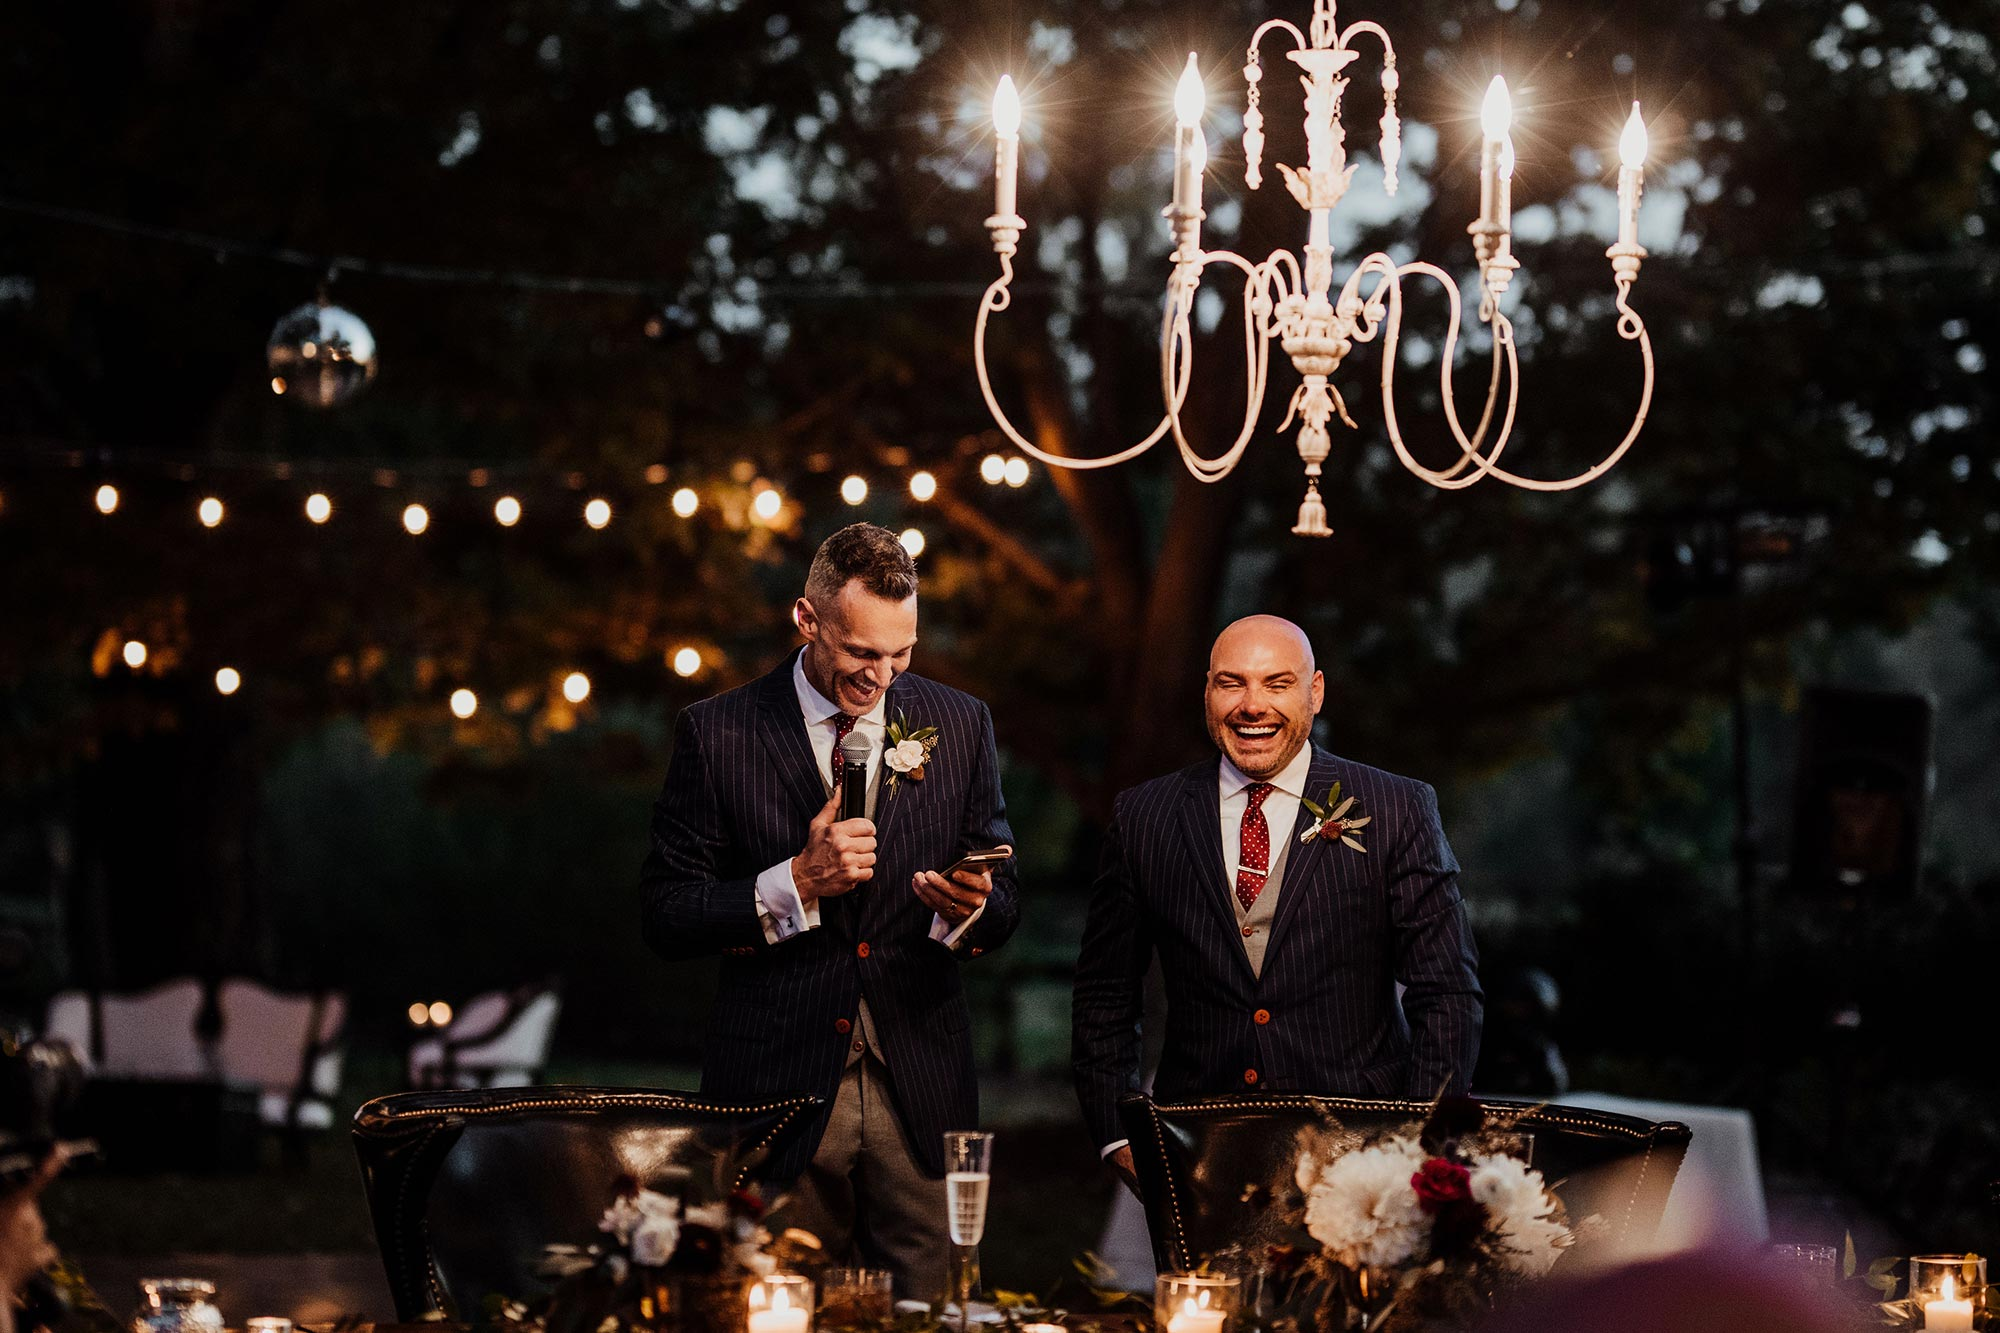 LGBTQ Louisville Kentucky Wedding at Hermitage Farm Crystal Ludwick Photo couple making speech